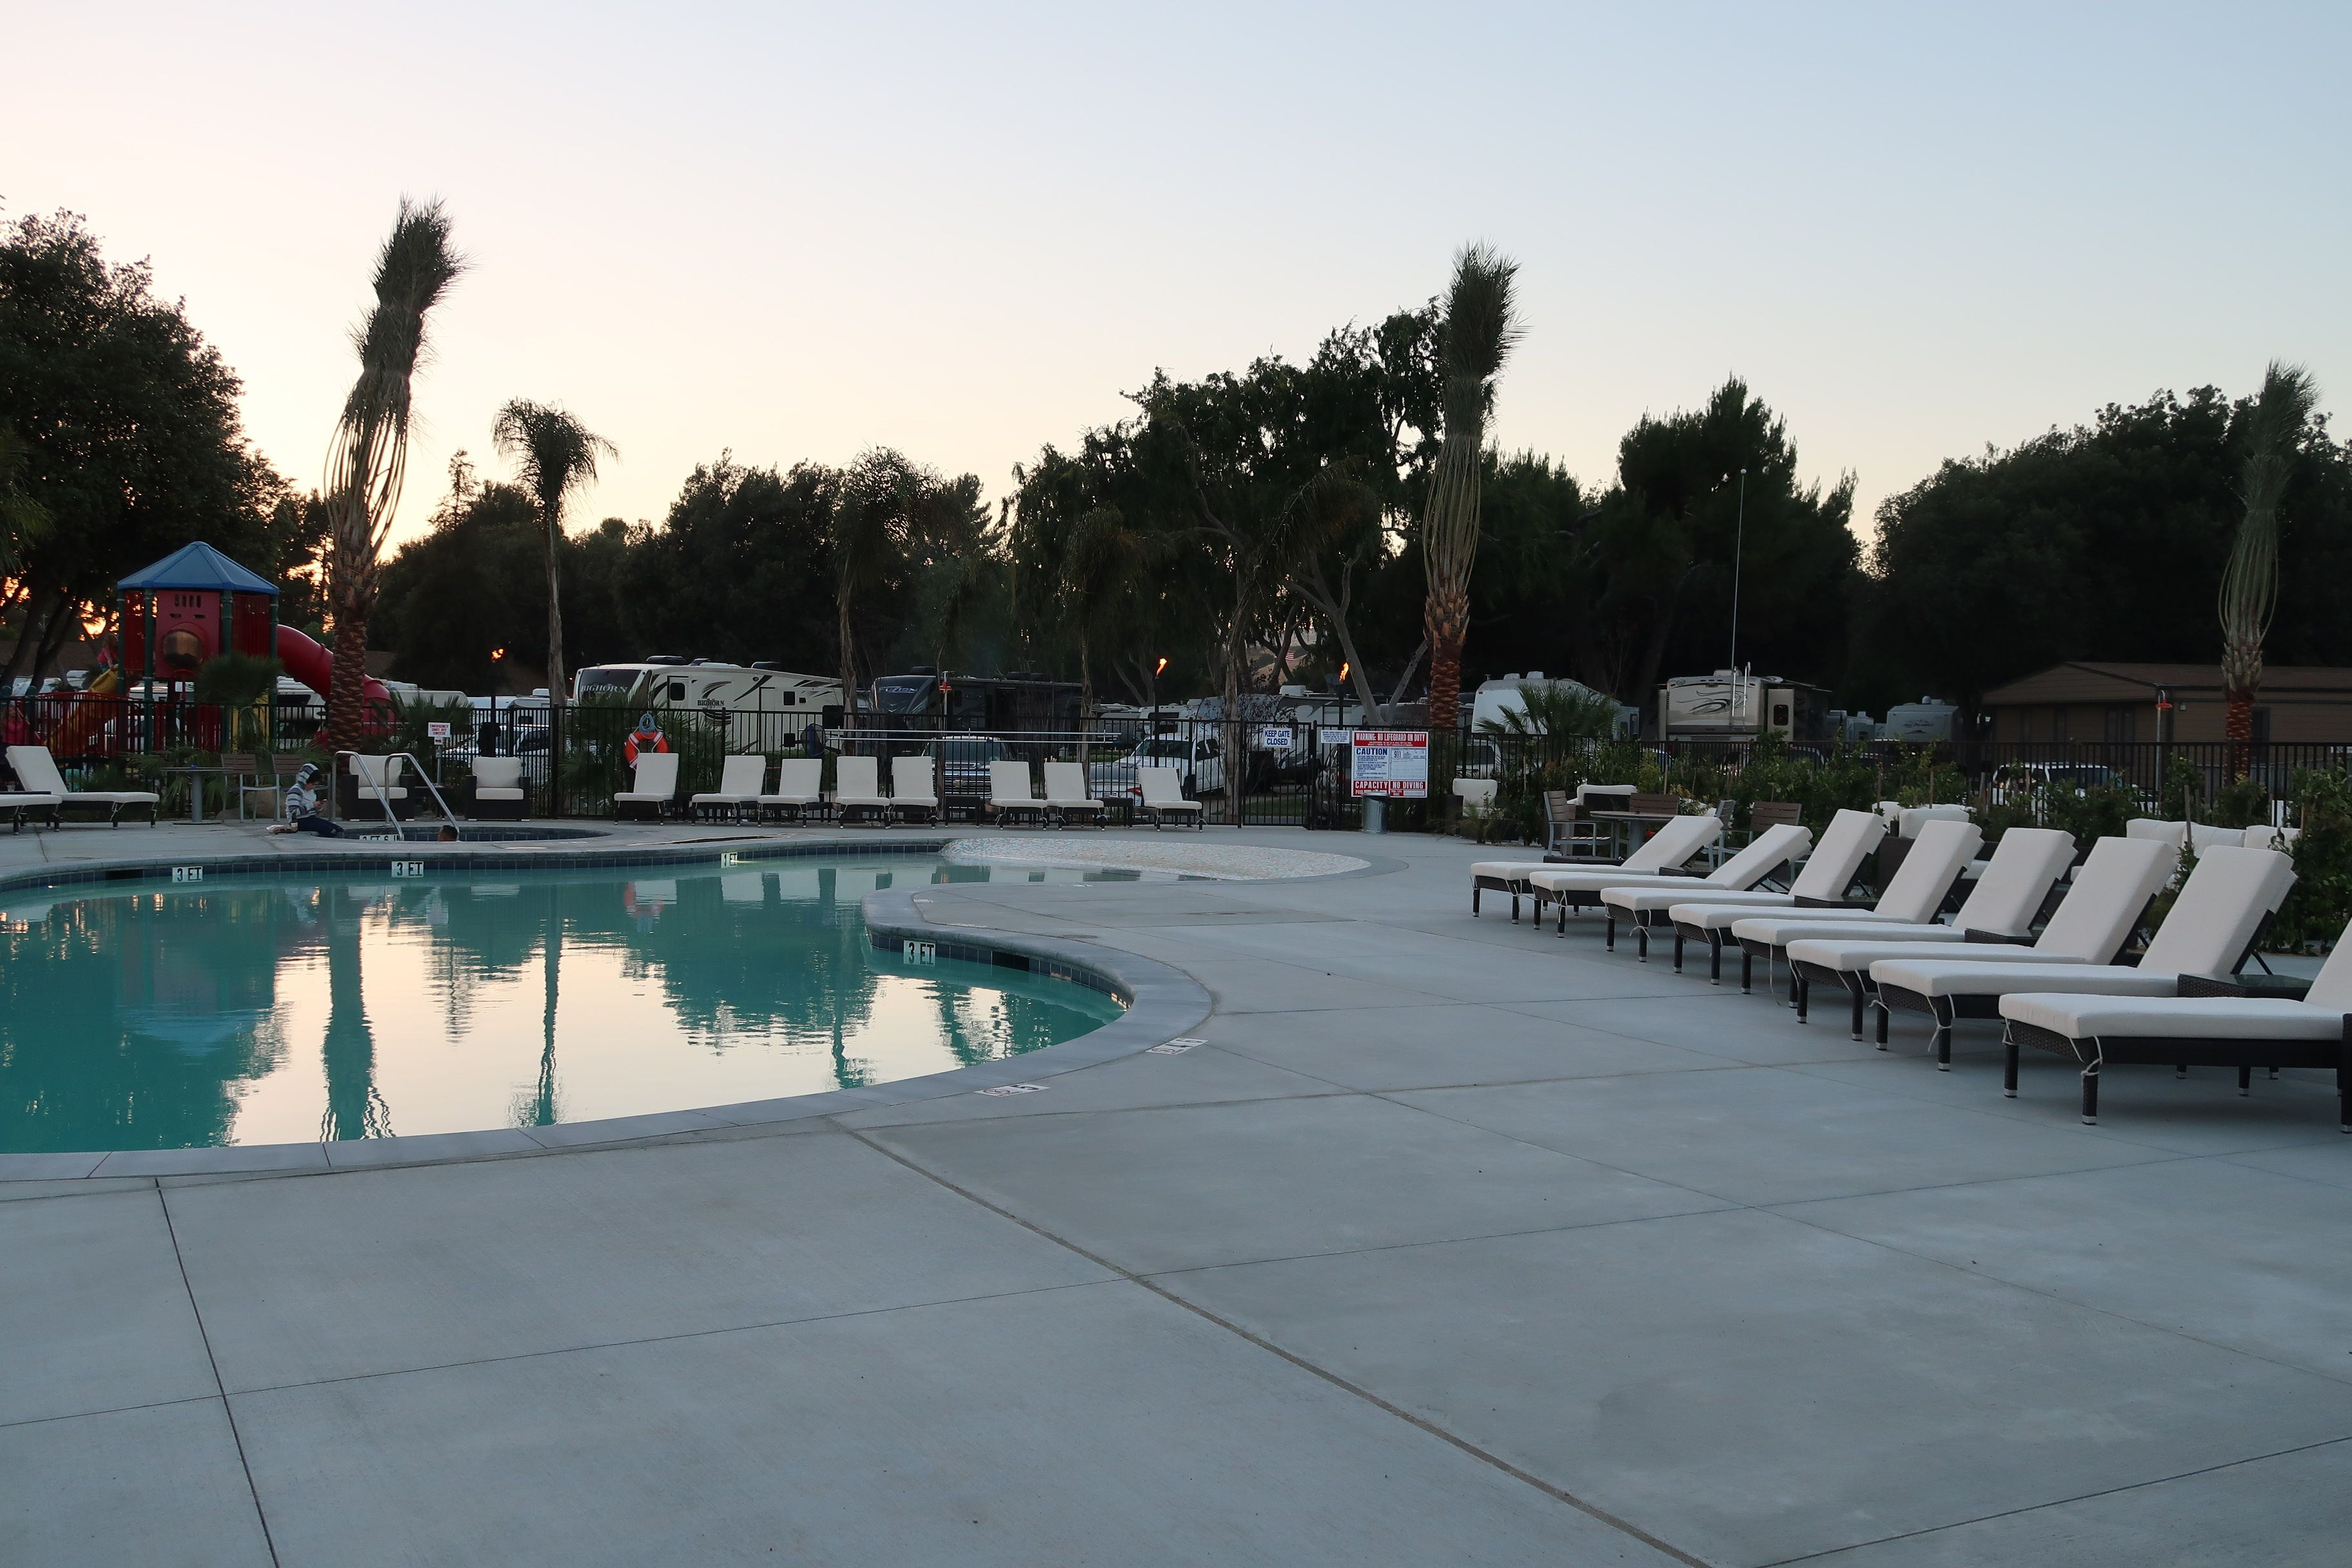 Ff Has Two Great Pools For Their Guests Lots Of Seating And There S Even Bocce Ball For Those Who Like Games Flyingflagsbuelton Flyi California Pool Resort